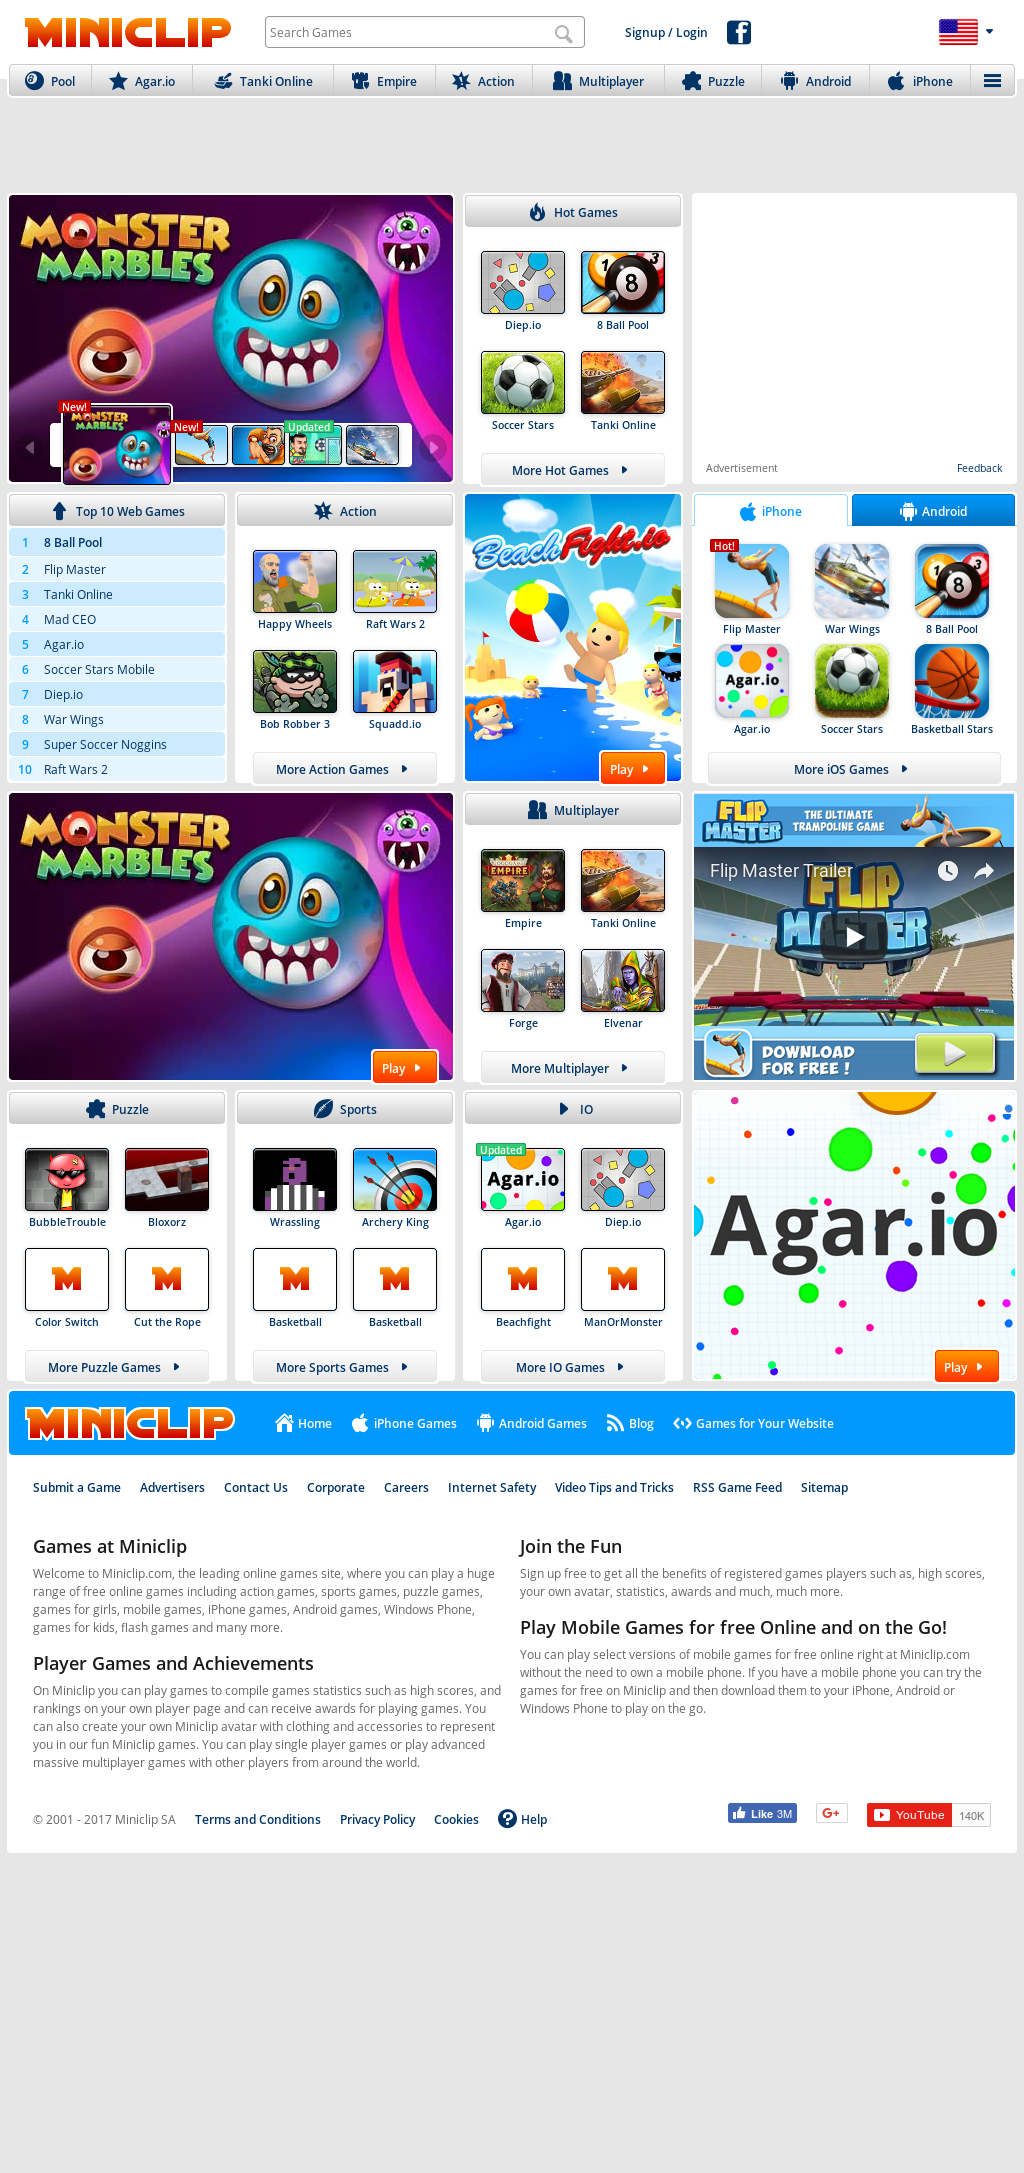 Miniclip Competitors, Revenue and Employees - Owler Company